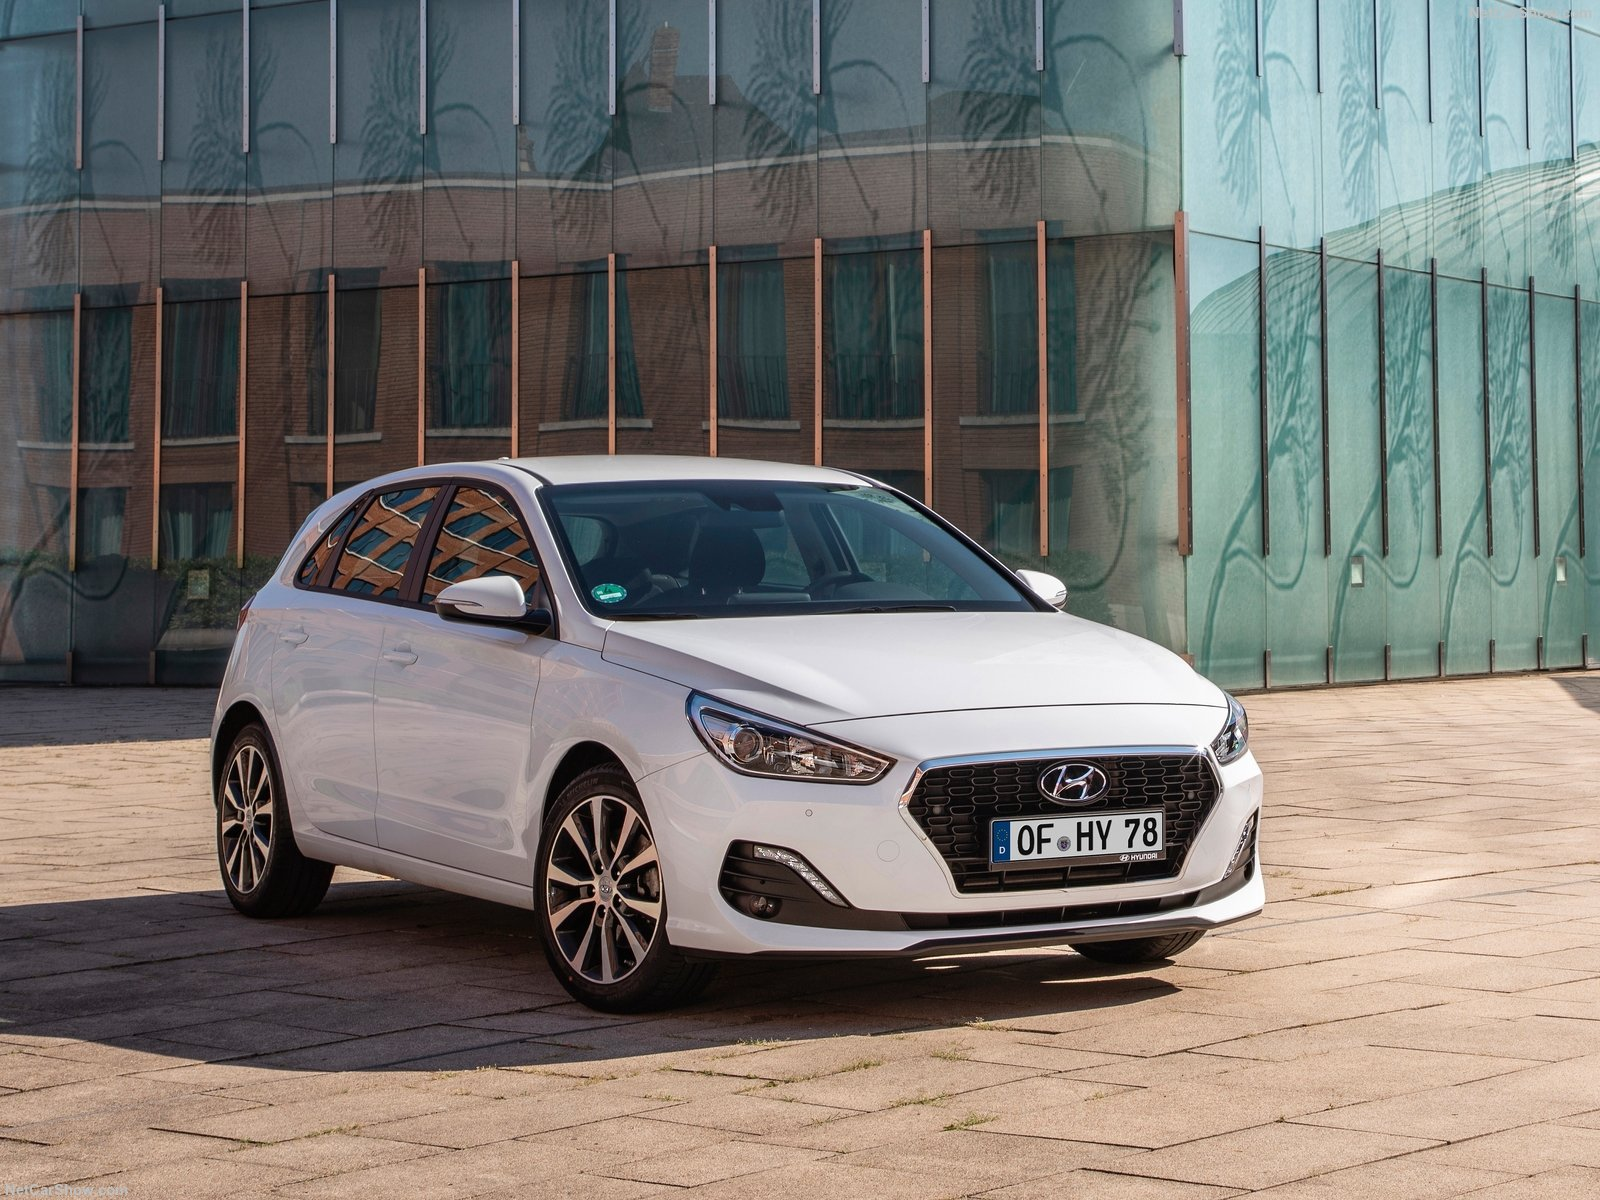 Hyundai i30 photo 190393